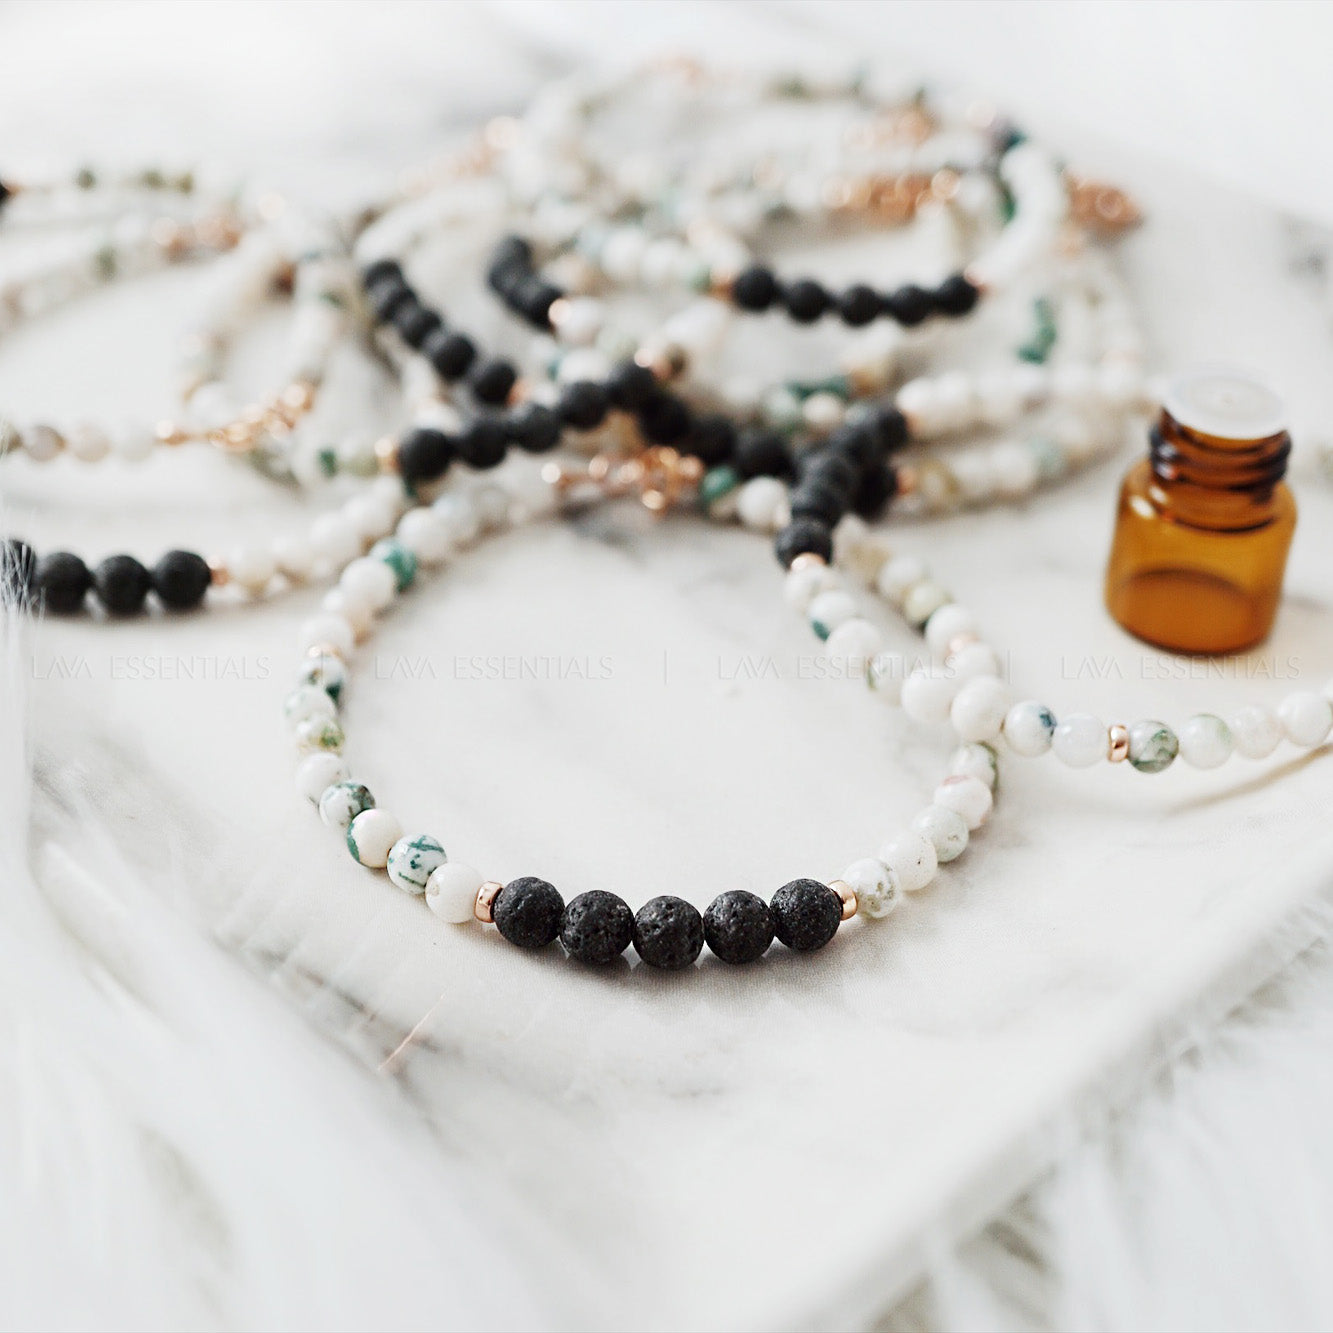 Moss Agate & Lava Bead Dainty Essential Oil Diffuser Bracelet [RG] - Lava Essential Oils